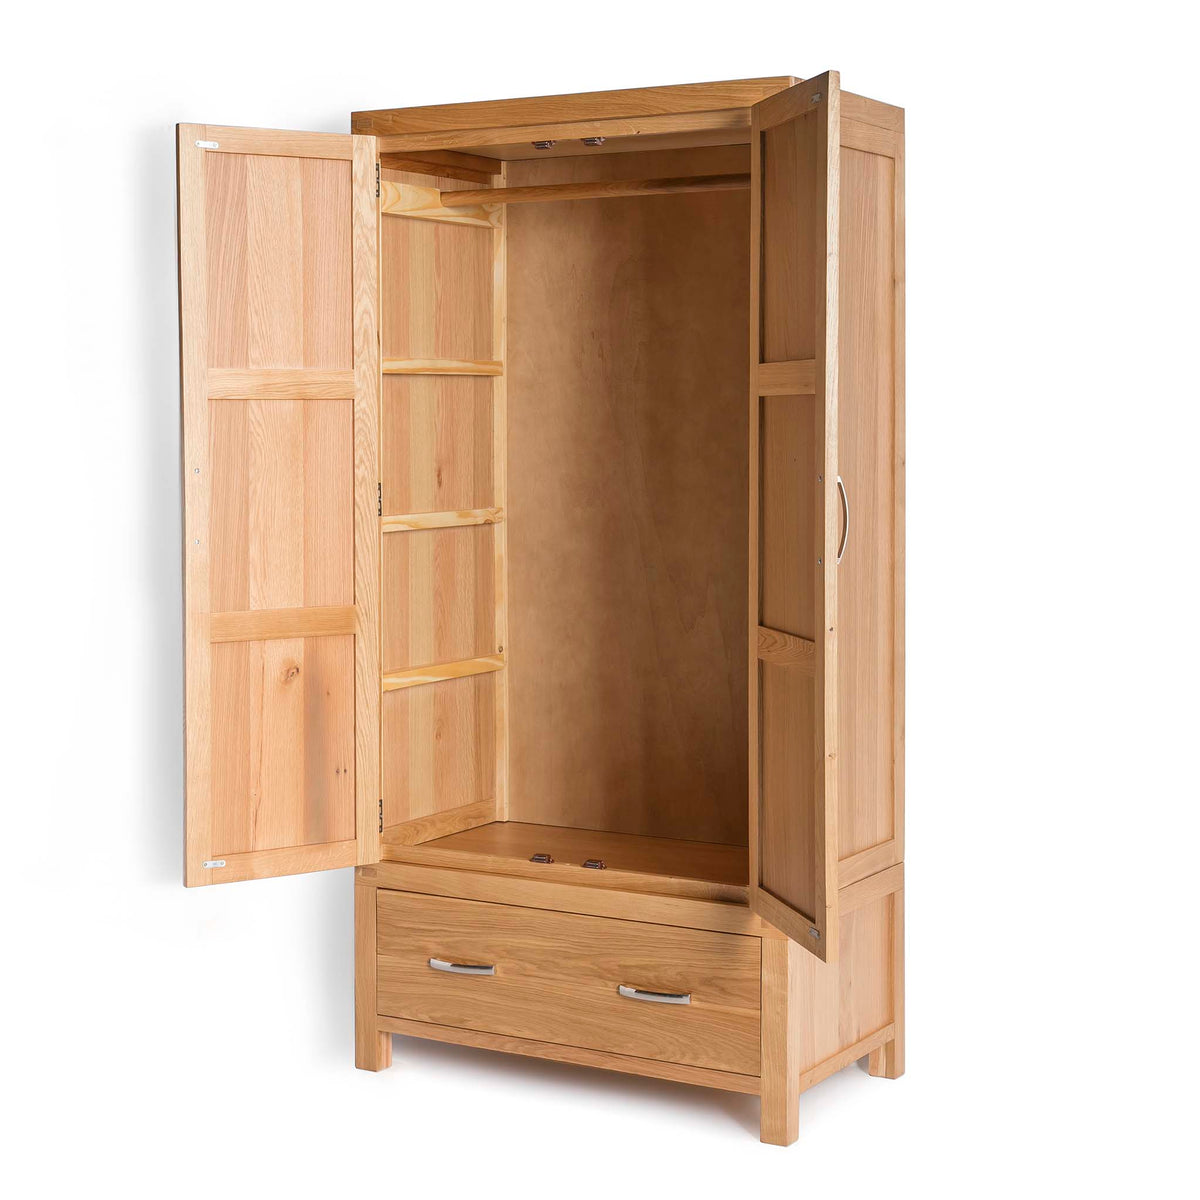 Abbey Light Oak Double Wardrobe - Side view with wardrobe doors open